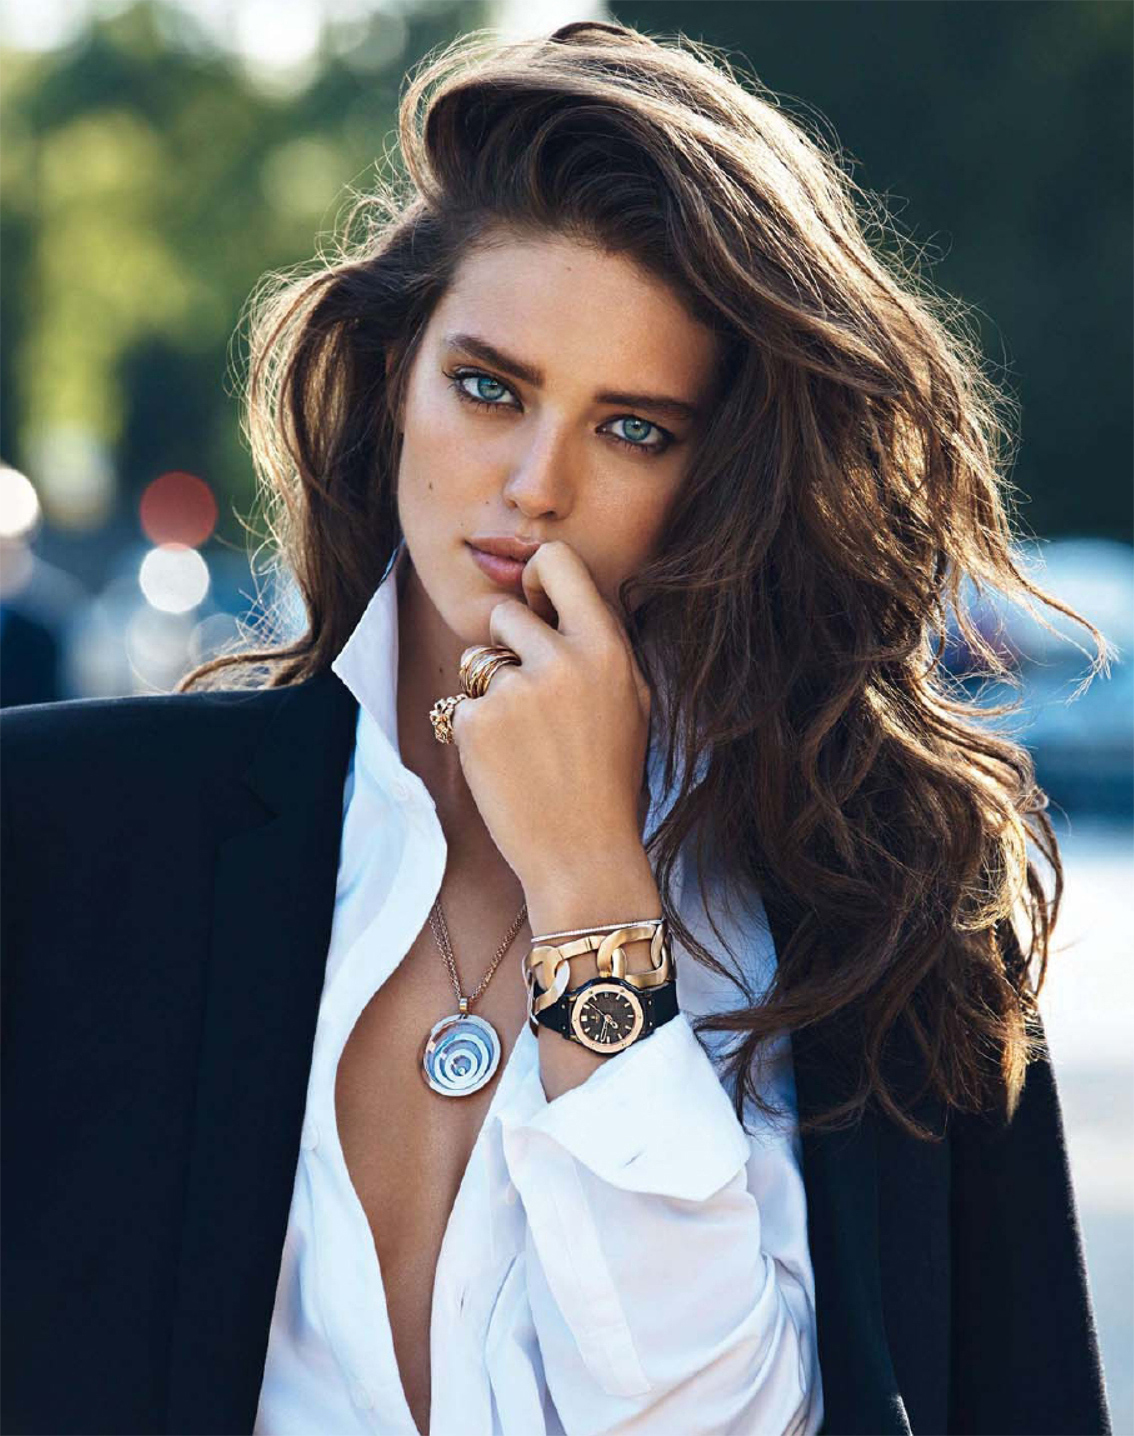 Emily Didonato in La Couleur de L'Or / Vogue Paris Bijoux September 2013 (photography: Lachlan Bailey, styling: Claire Dhelens) / white shirt in fashion editorials / short history of white shirt / wardrobe essentials / via fashioned by love british fashion blog